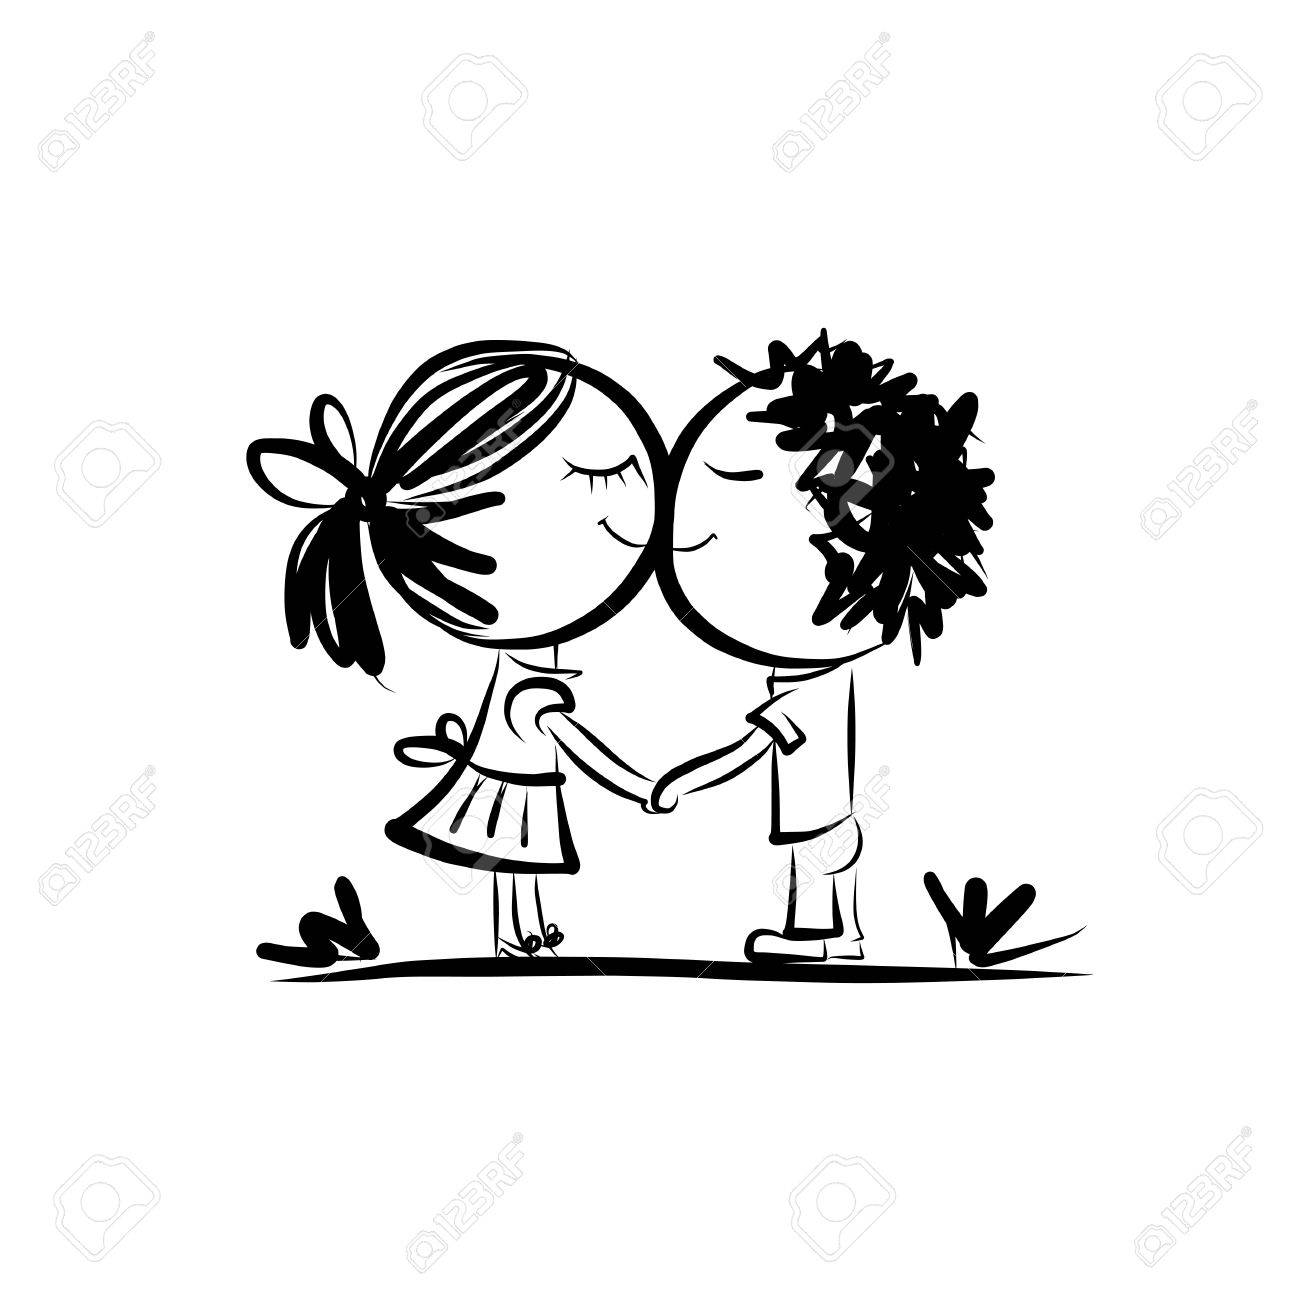 Couple in love together, valentine sketch for your design Stock Vector - 34480262